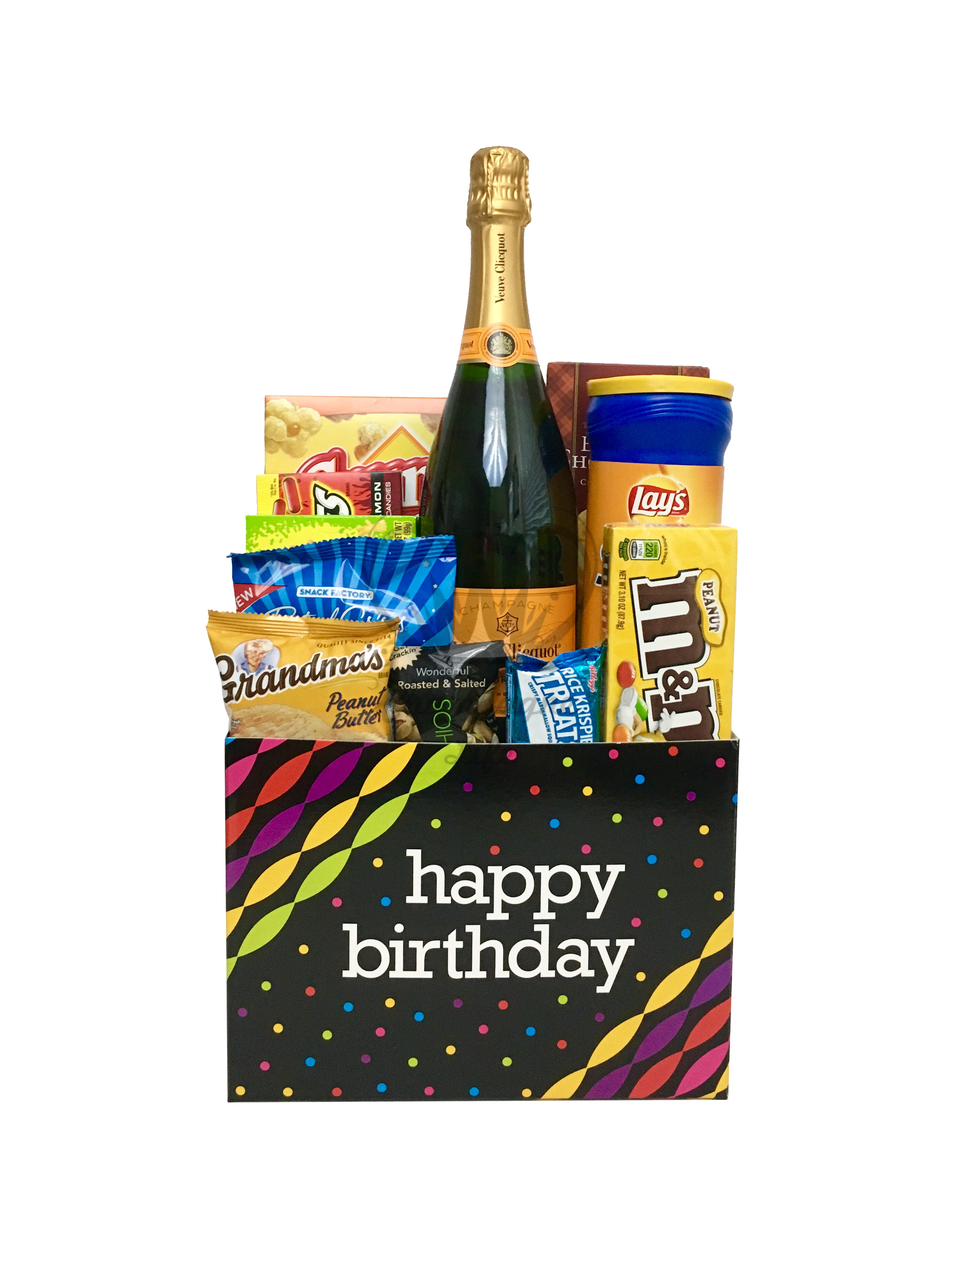 The Veuve Clicquot Birthday Gift Basket Is Available For Same Day Delivery In Las Vegas NV Custom Champagne Sets Corporate Gifts Or Build Your Own